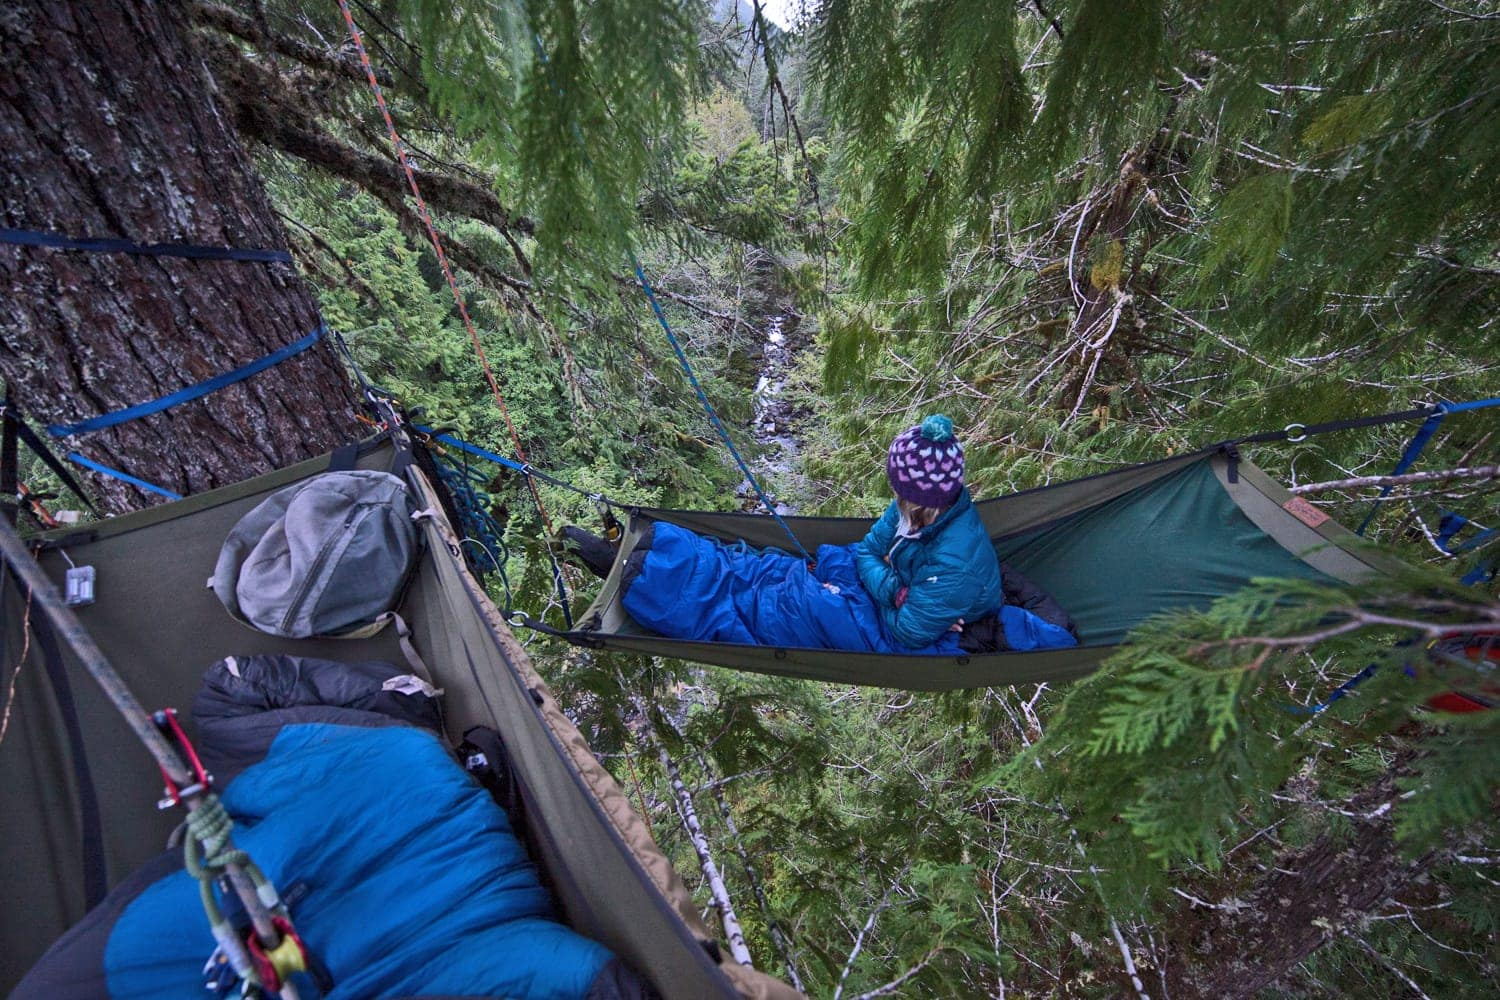 Waking up in the trees